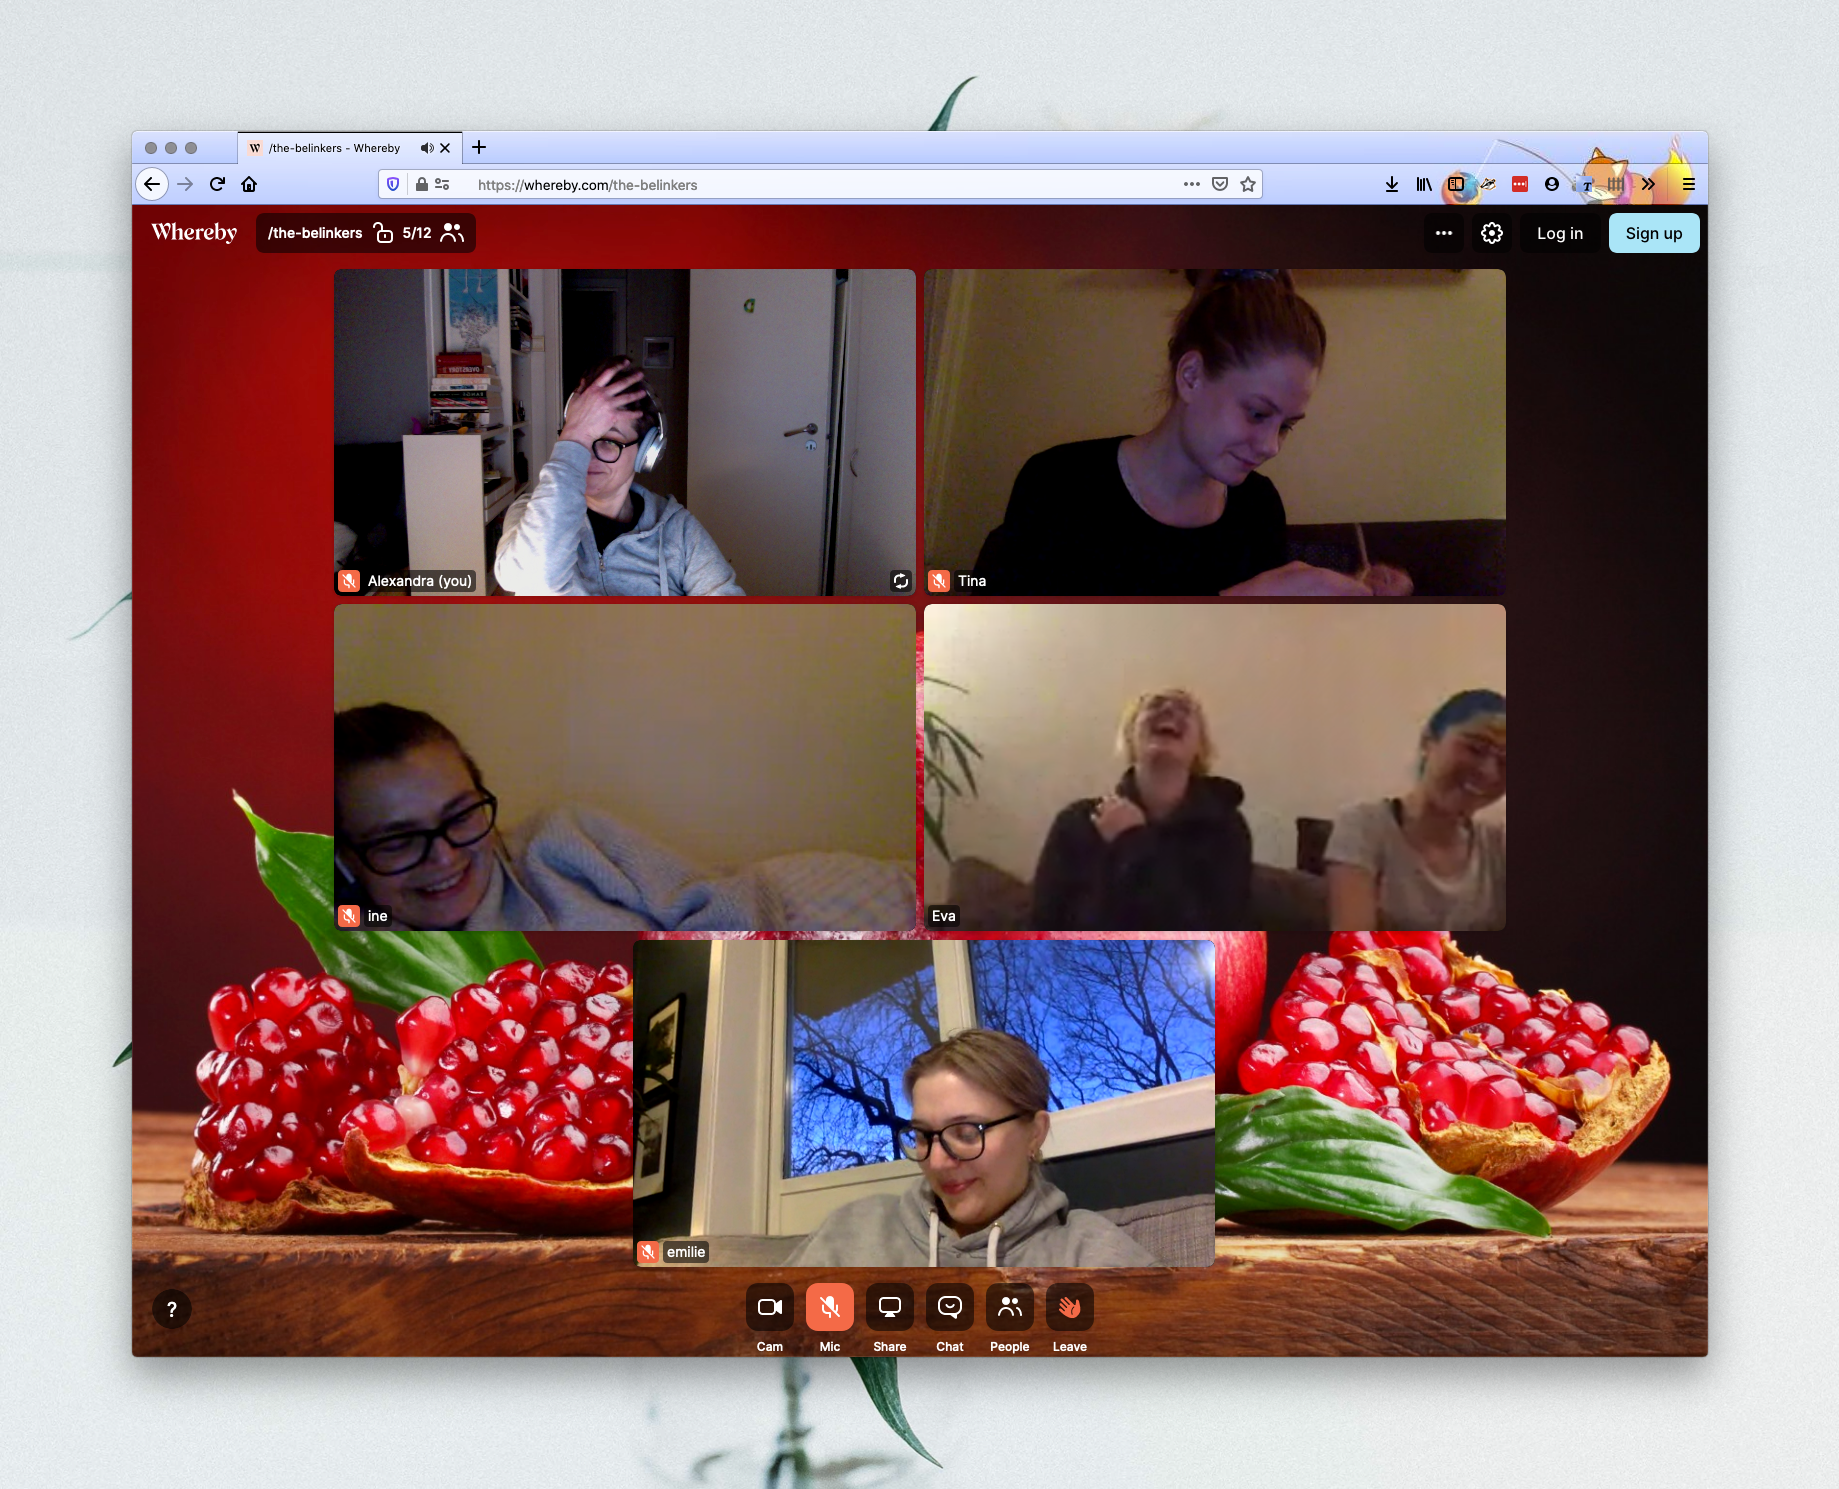 Video call with coworkers